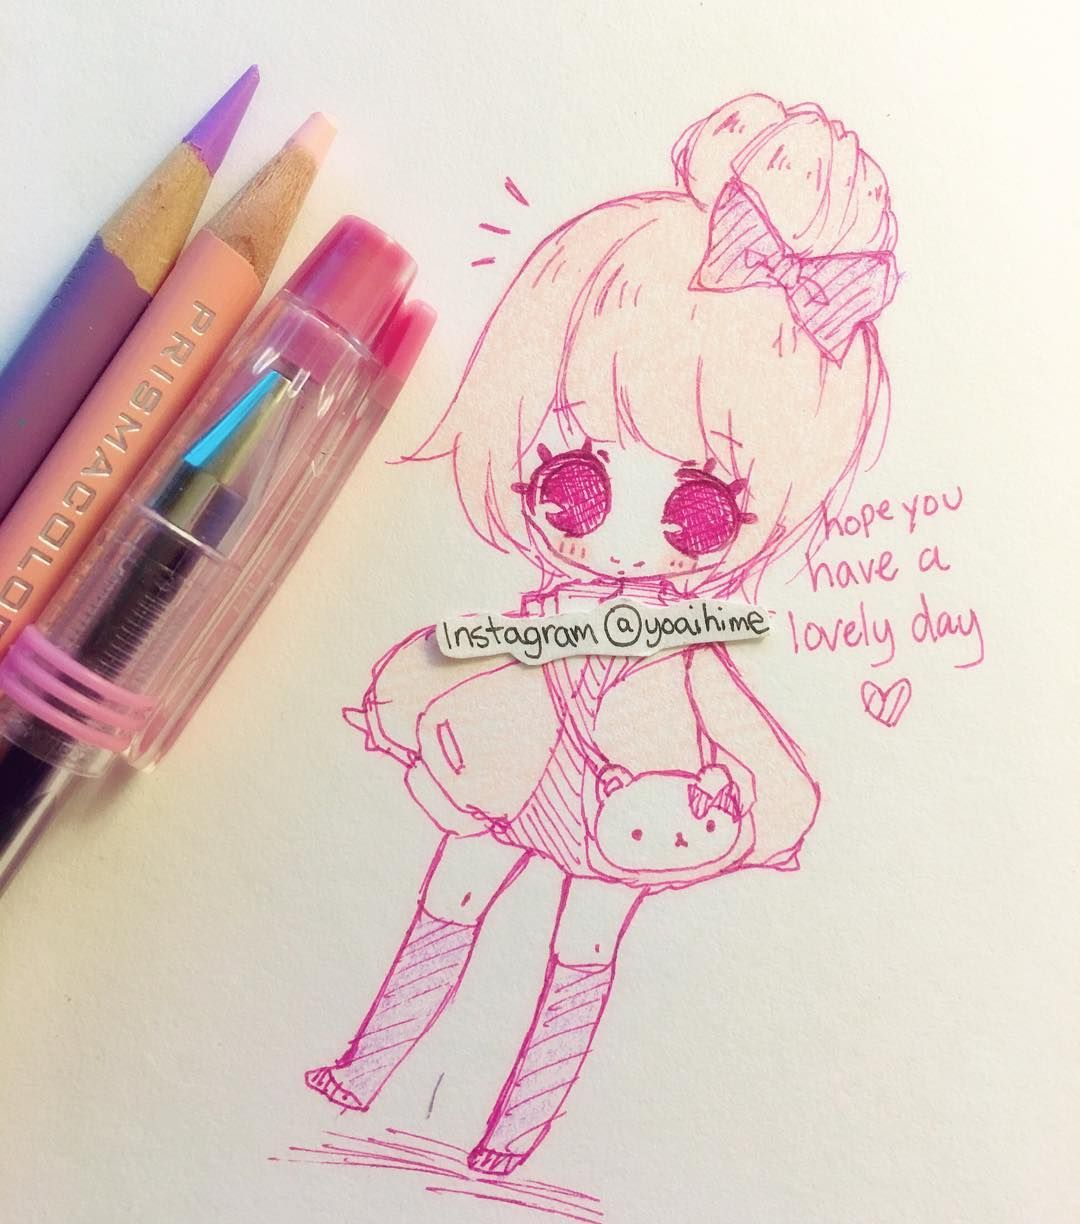 Hi~ a quick doodle, just wanted to tell everyone that you all deserve to be happy and to have a great day (。・ω・。)ノ♡